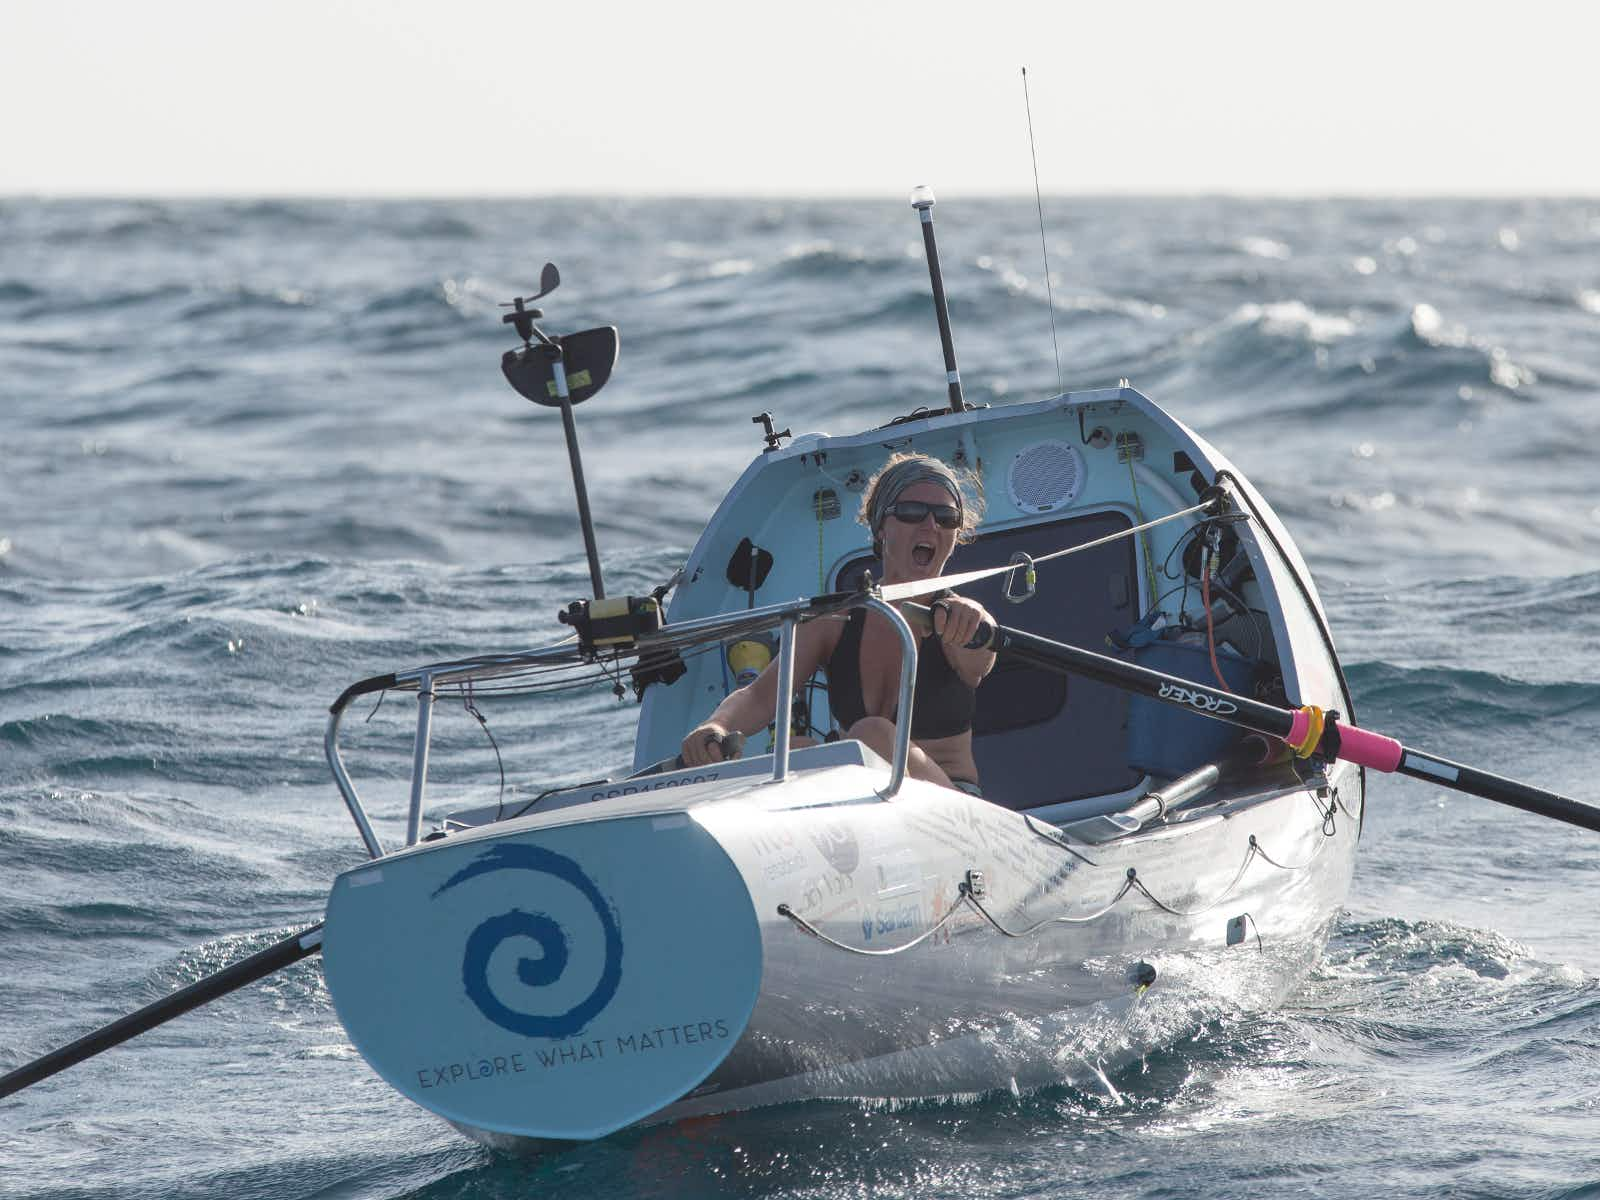 Kiko arriving at North Point, Barbados. Still with a reasonable swell but ahead of schedule.  First human interaction for 50 days.